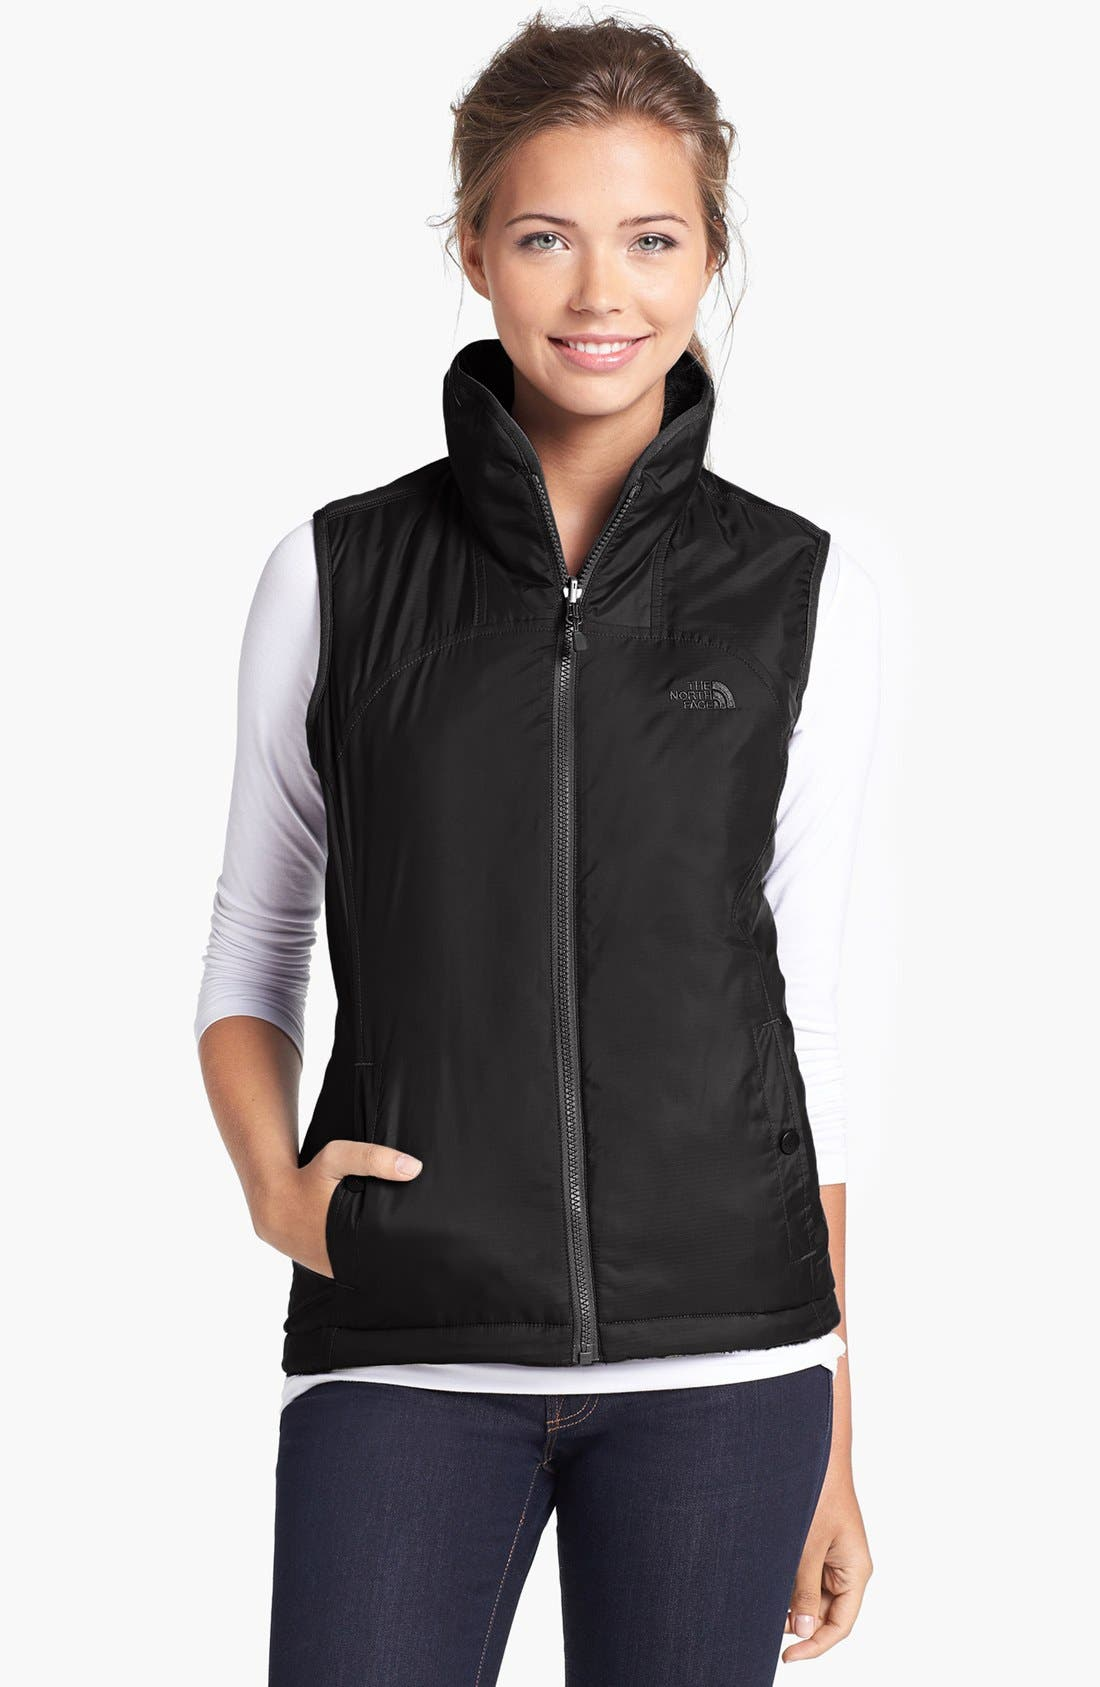 Alternate Image 1 Selected - The North Face 'Mossbud' Insulated Reversible Vest